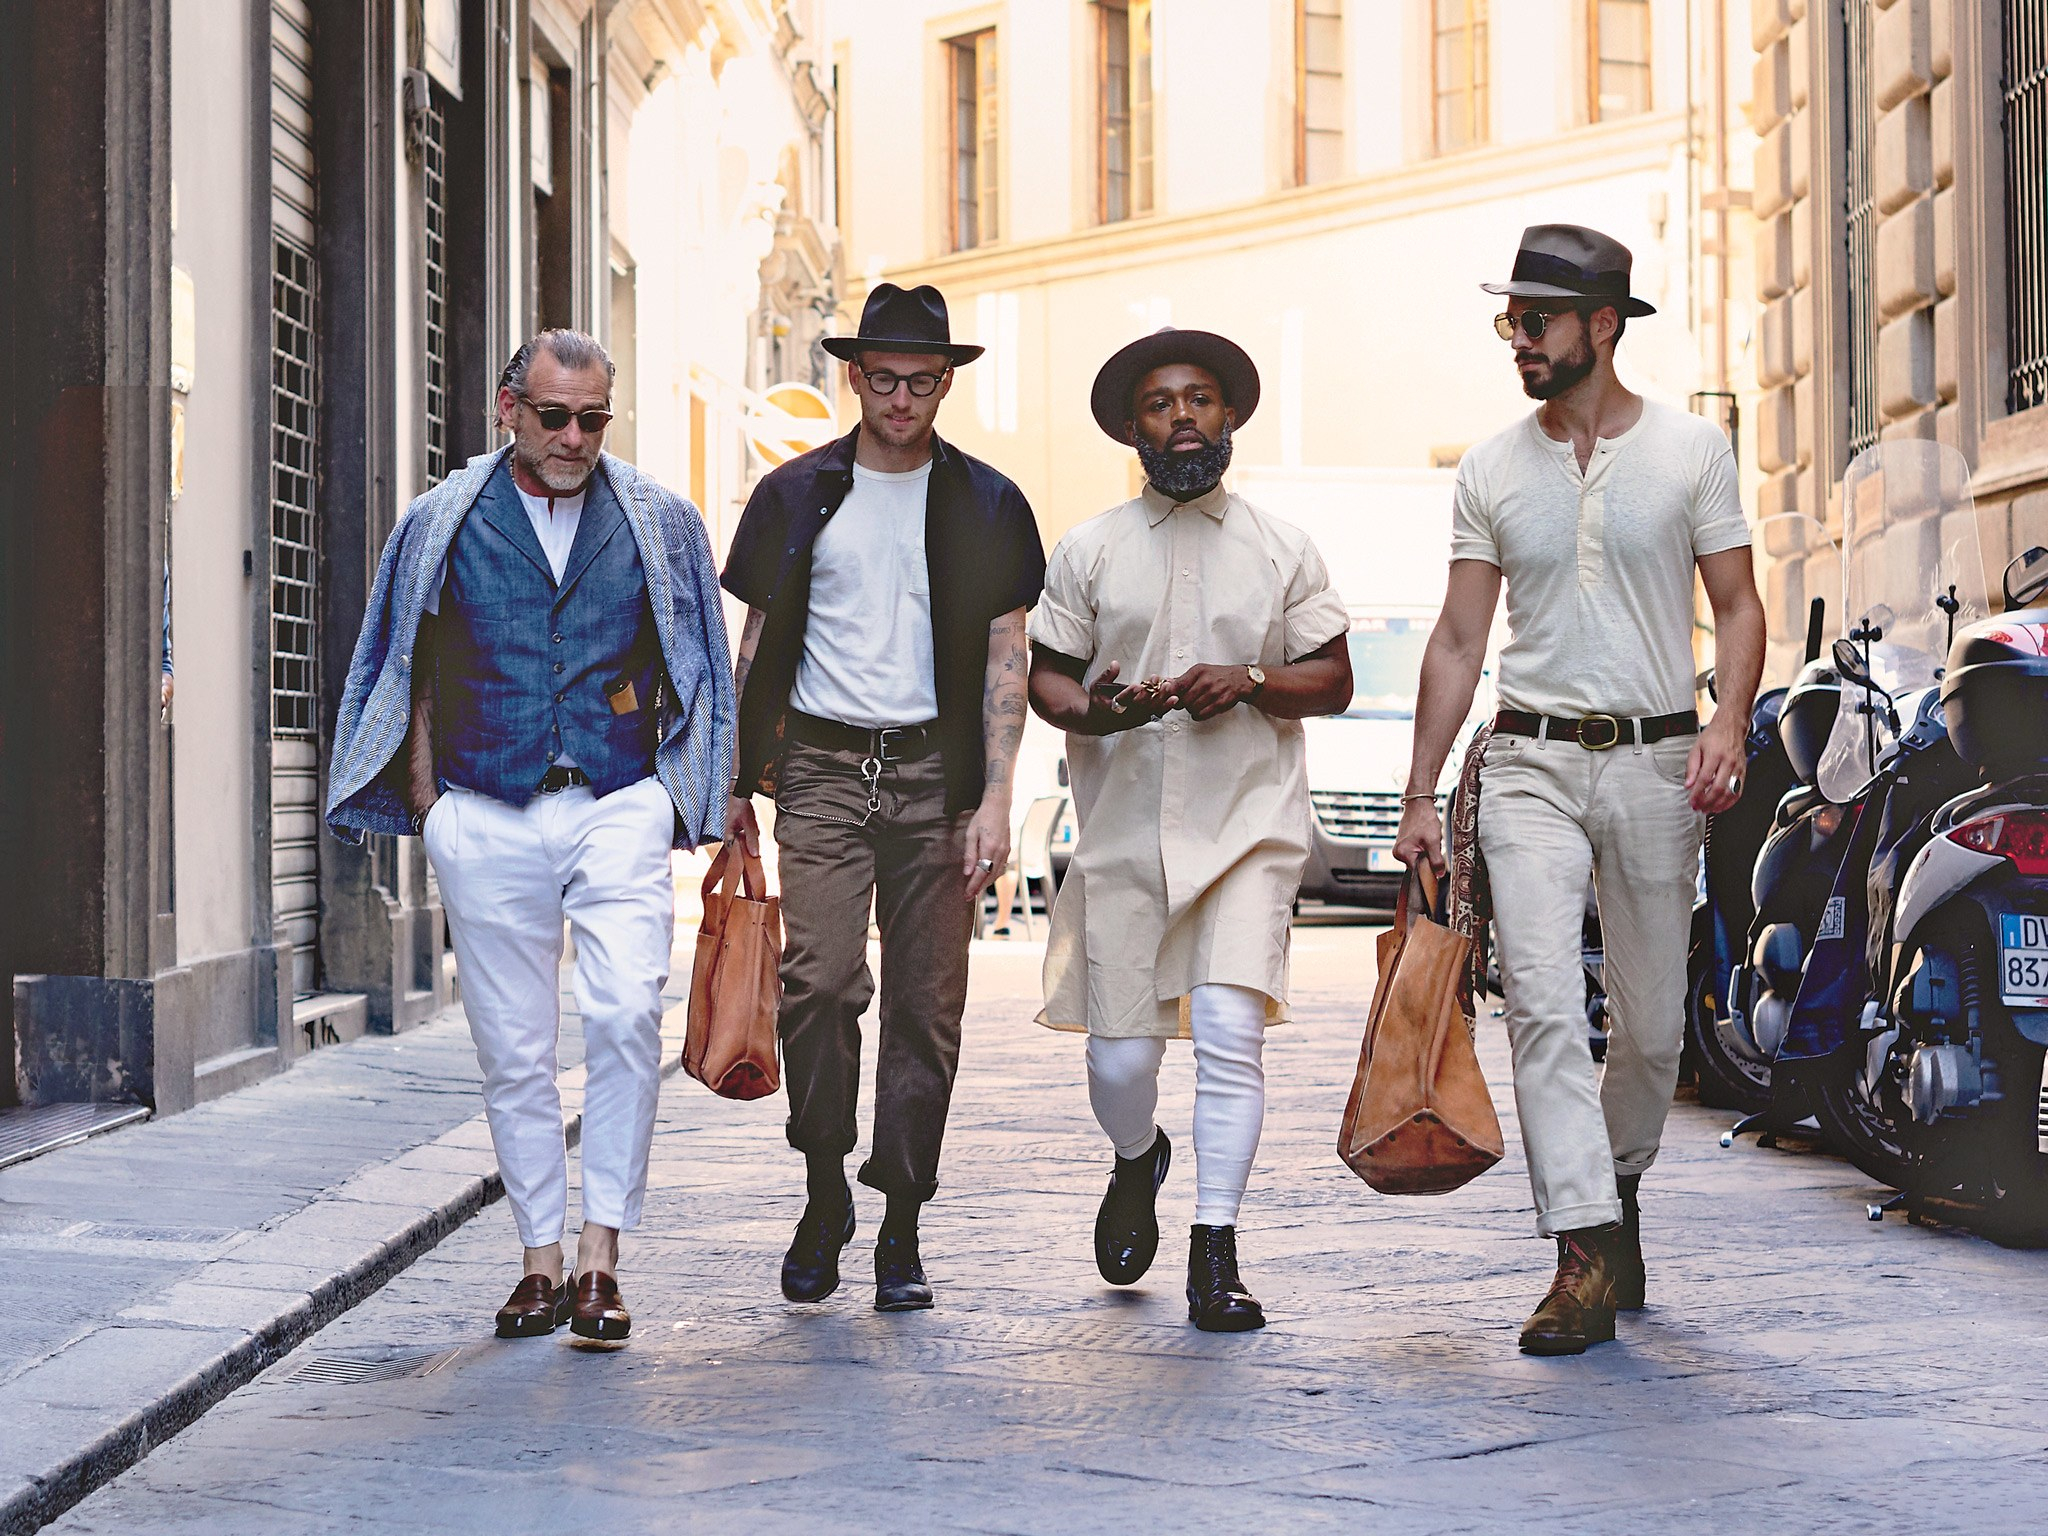 pitti party - Where the young vintage-menswear crowd hangs out in Florence.Conde Nast Traveler, 2016.